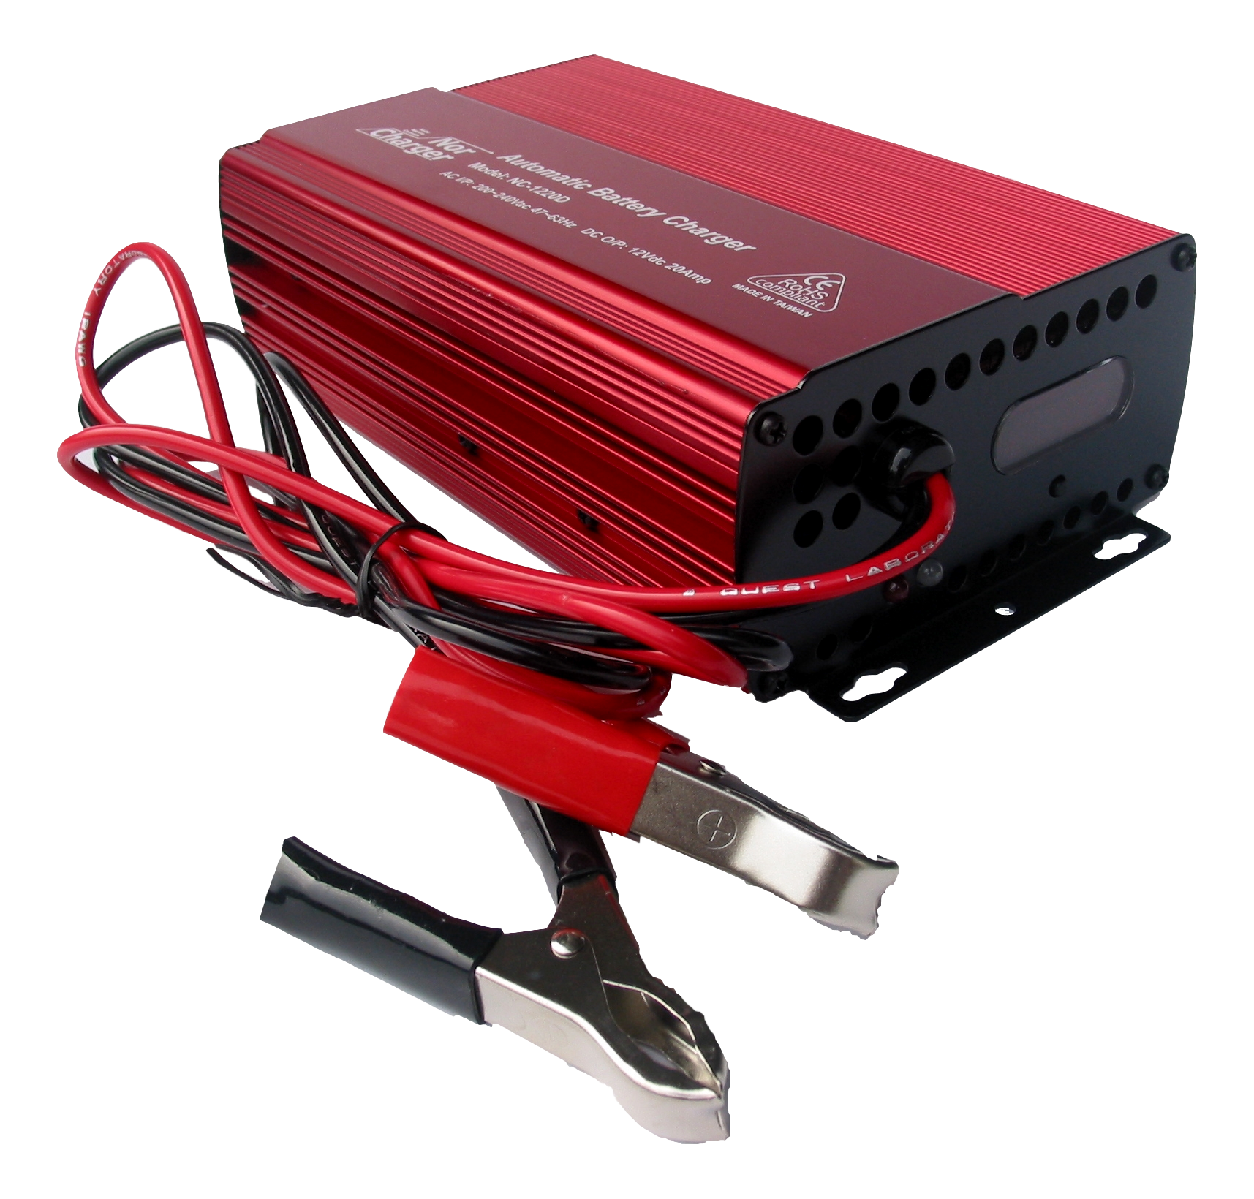 Nor Charger Batterilader